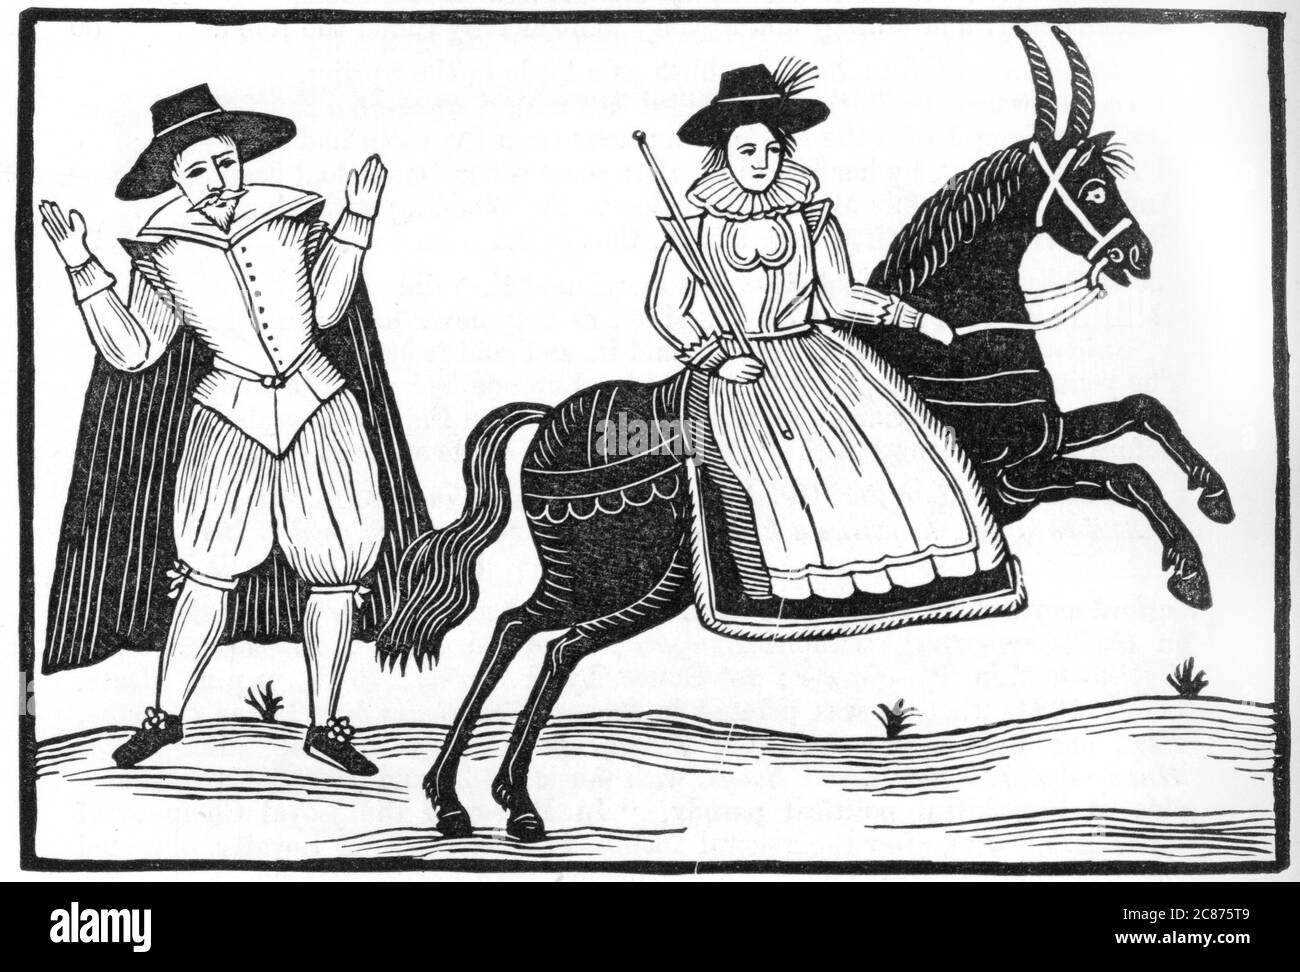 A lady riding sidesaddle causes a gentleman to raise his hands - but whether at her riding skills, her beauty or her recklessness, who knows ?      Date: circa 1660 Stock Photo